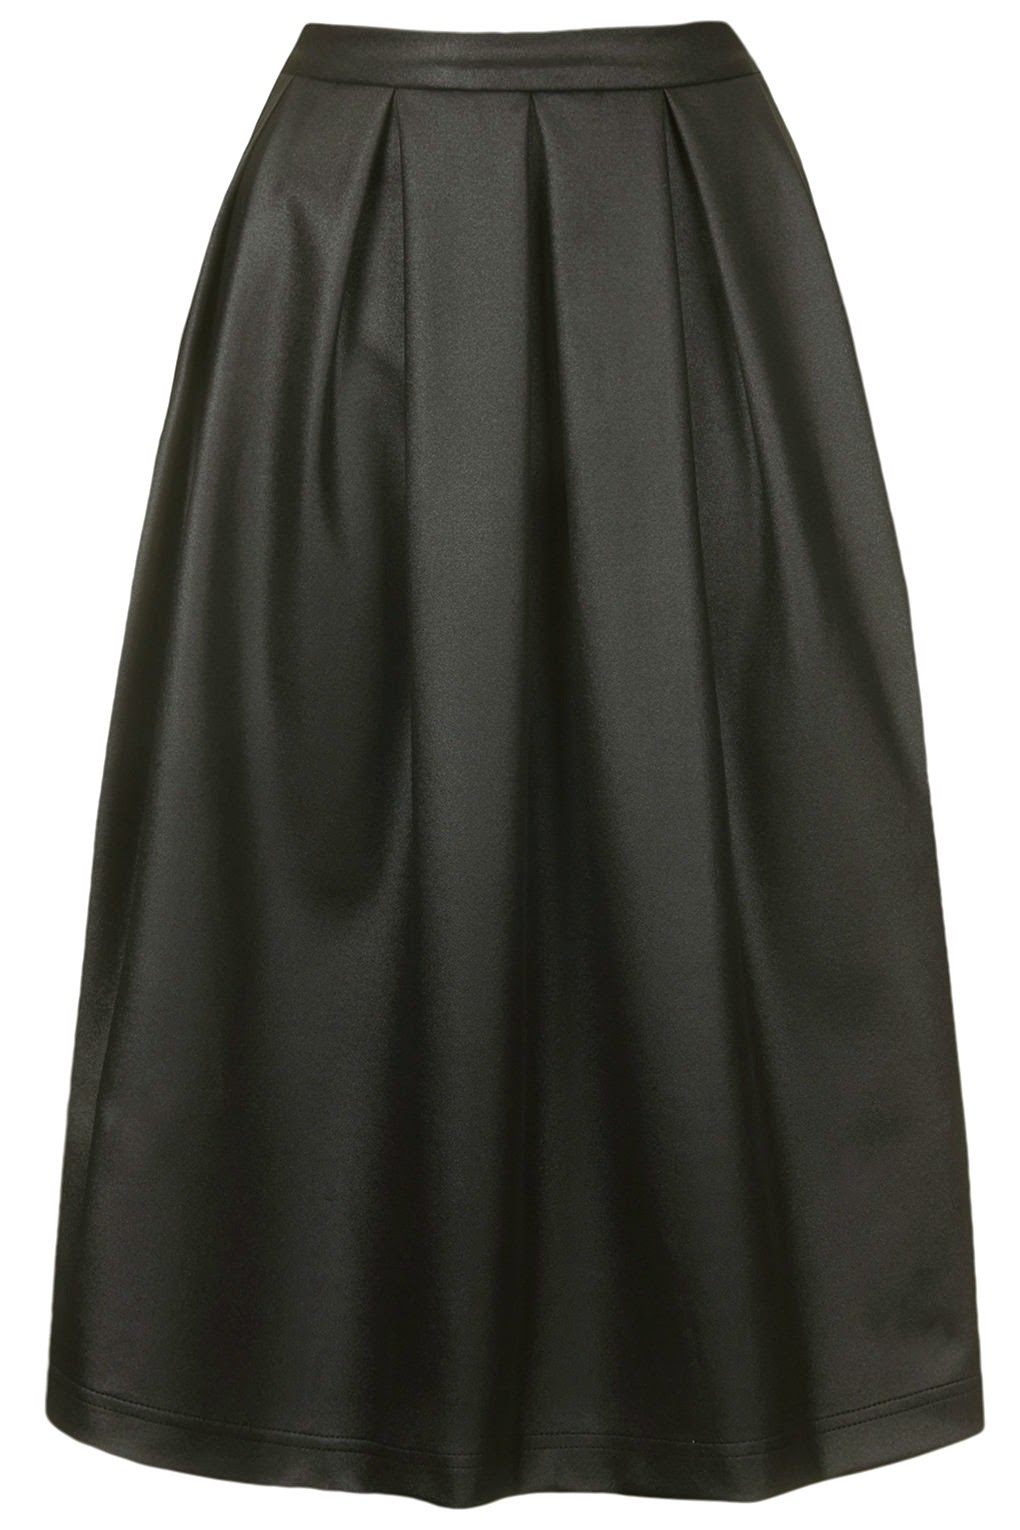 coated black skirt